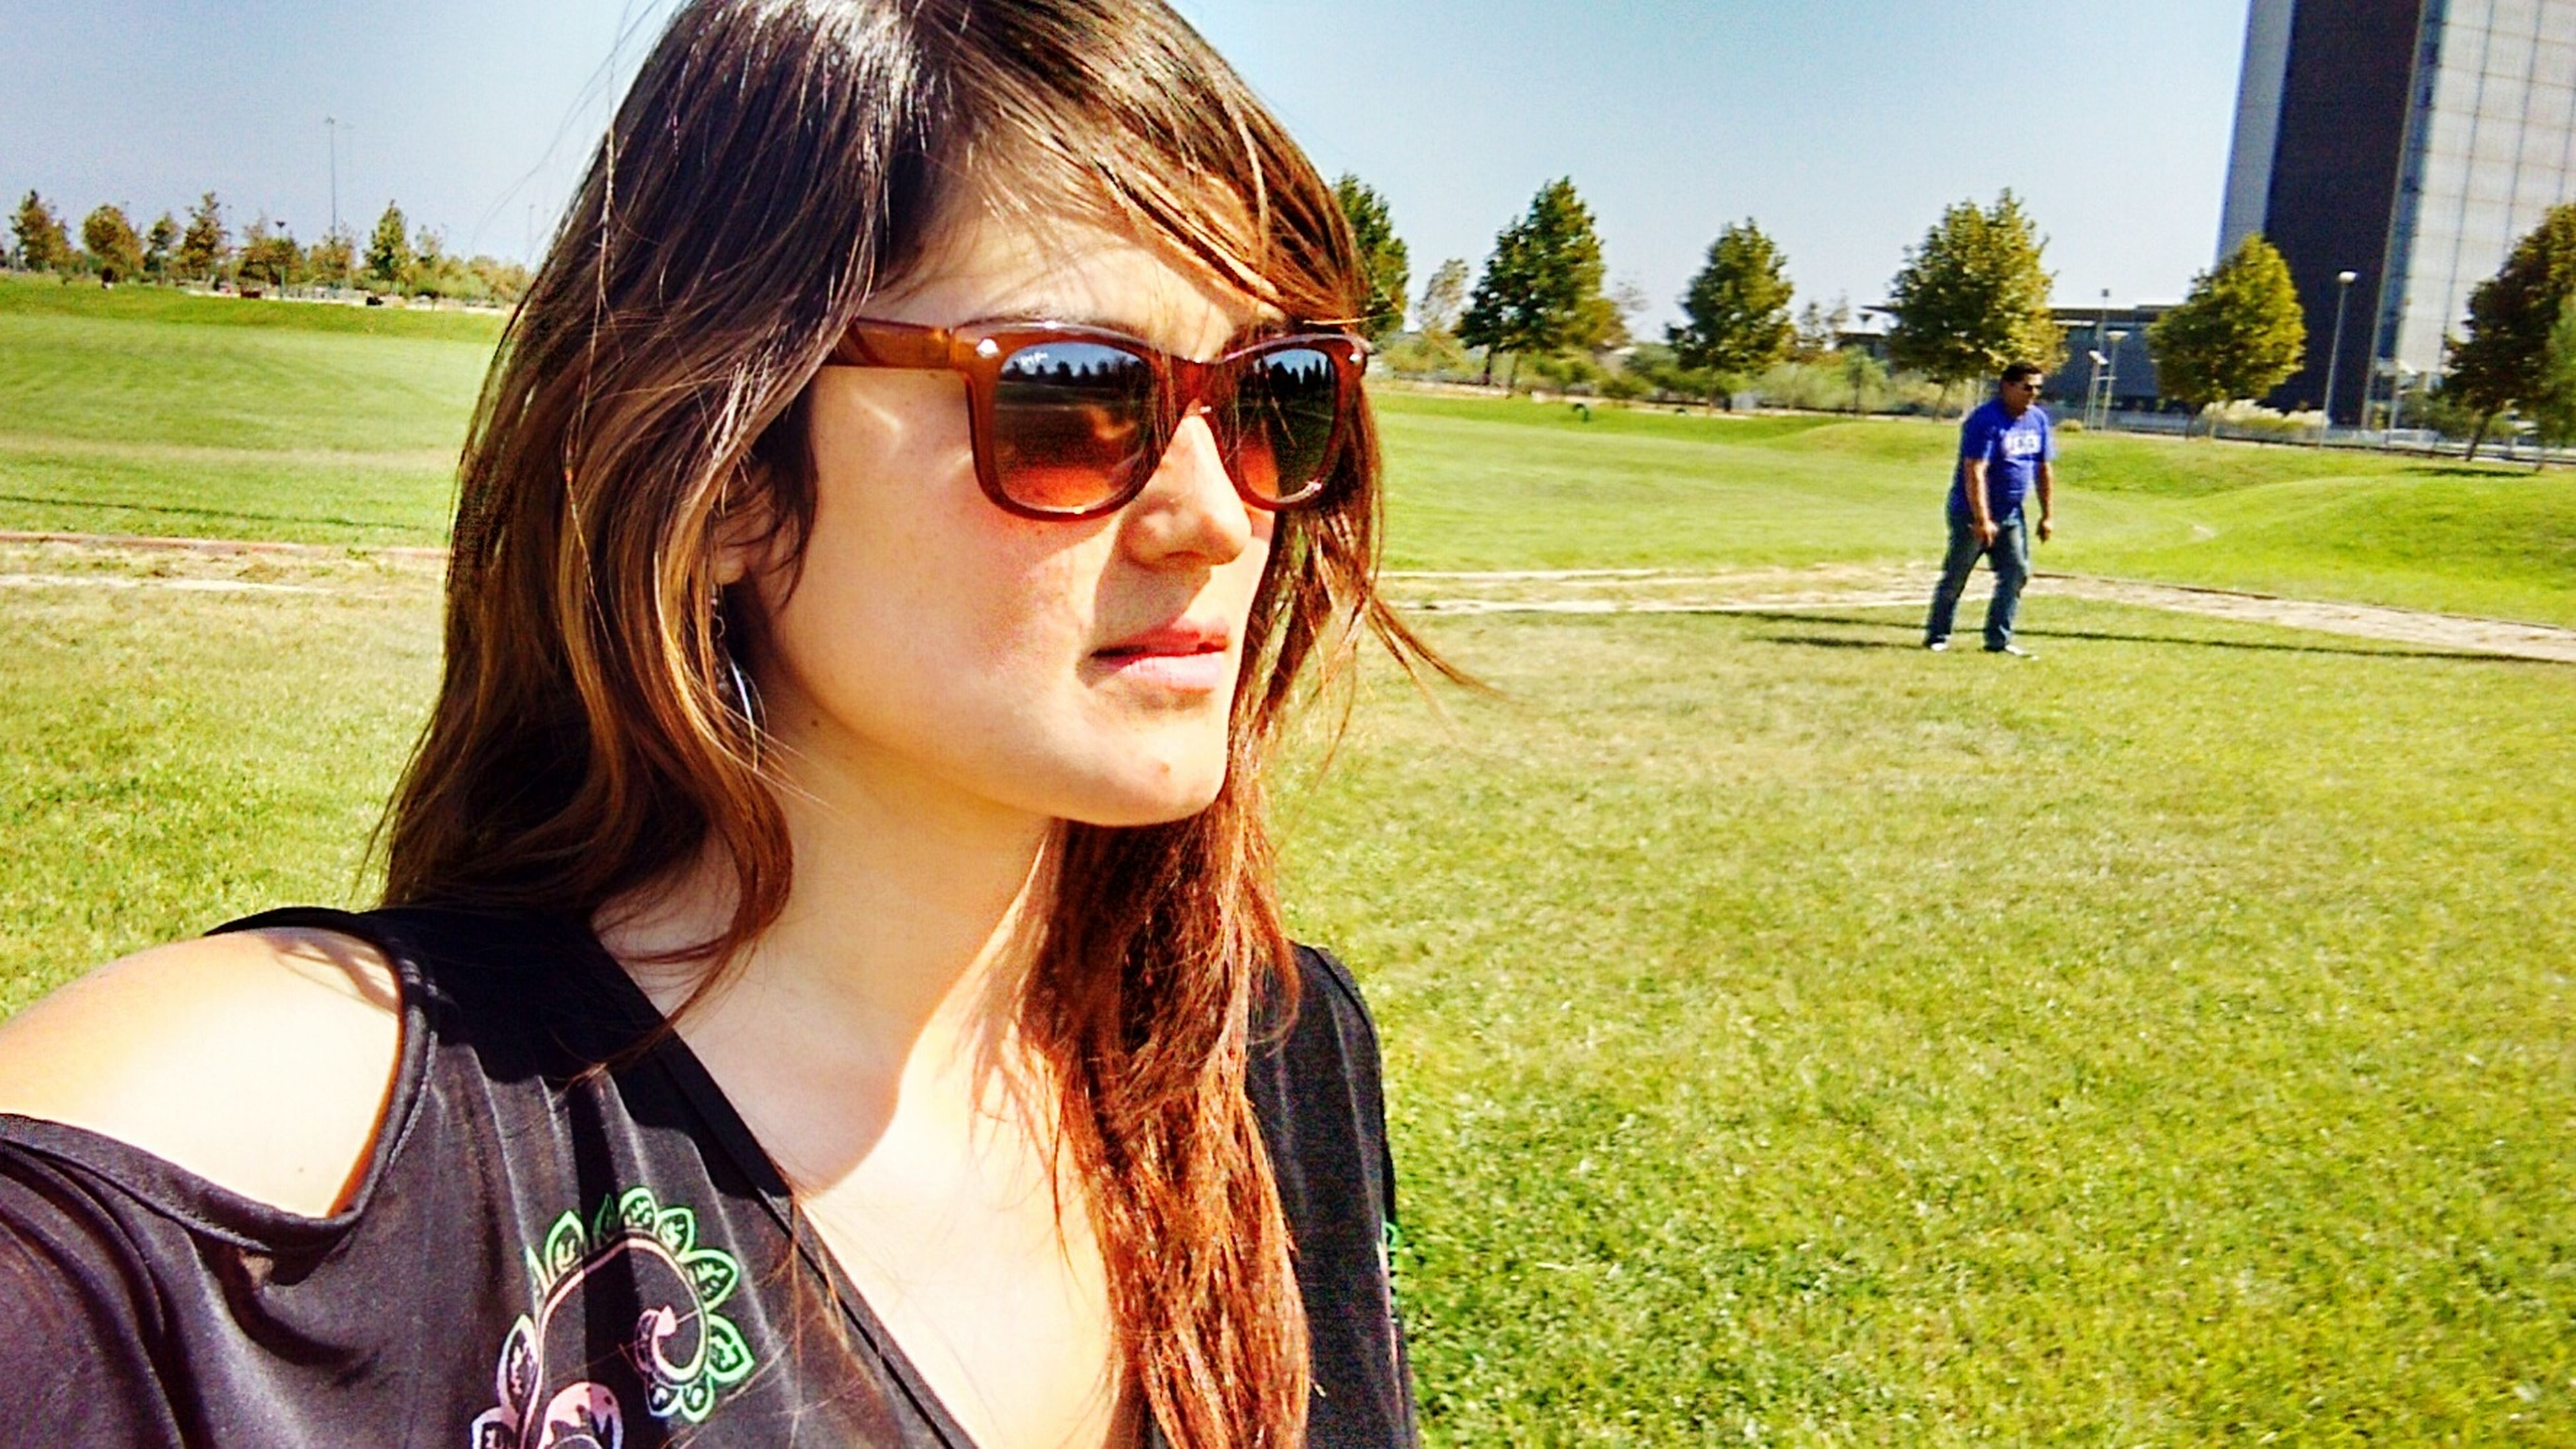 grass, person, lifestyles, leisure activity, young adult, looking at camera, portrait, young women, sunglasses, front view, sunlight, smiling, casual clothing, field, lawn, day, grassy, park - man made space